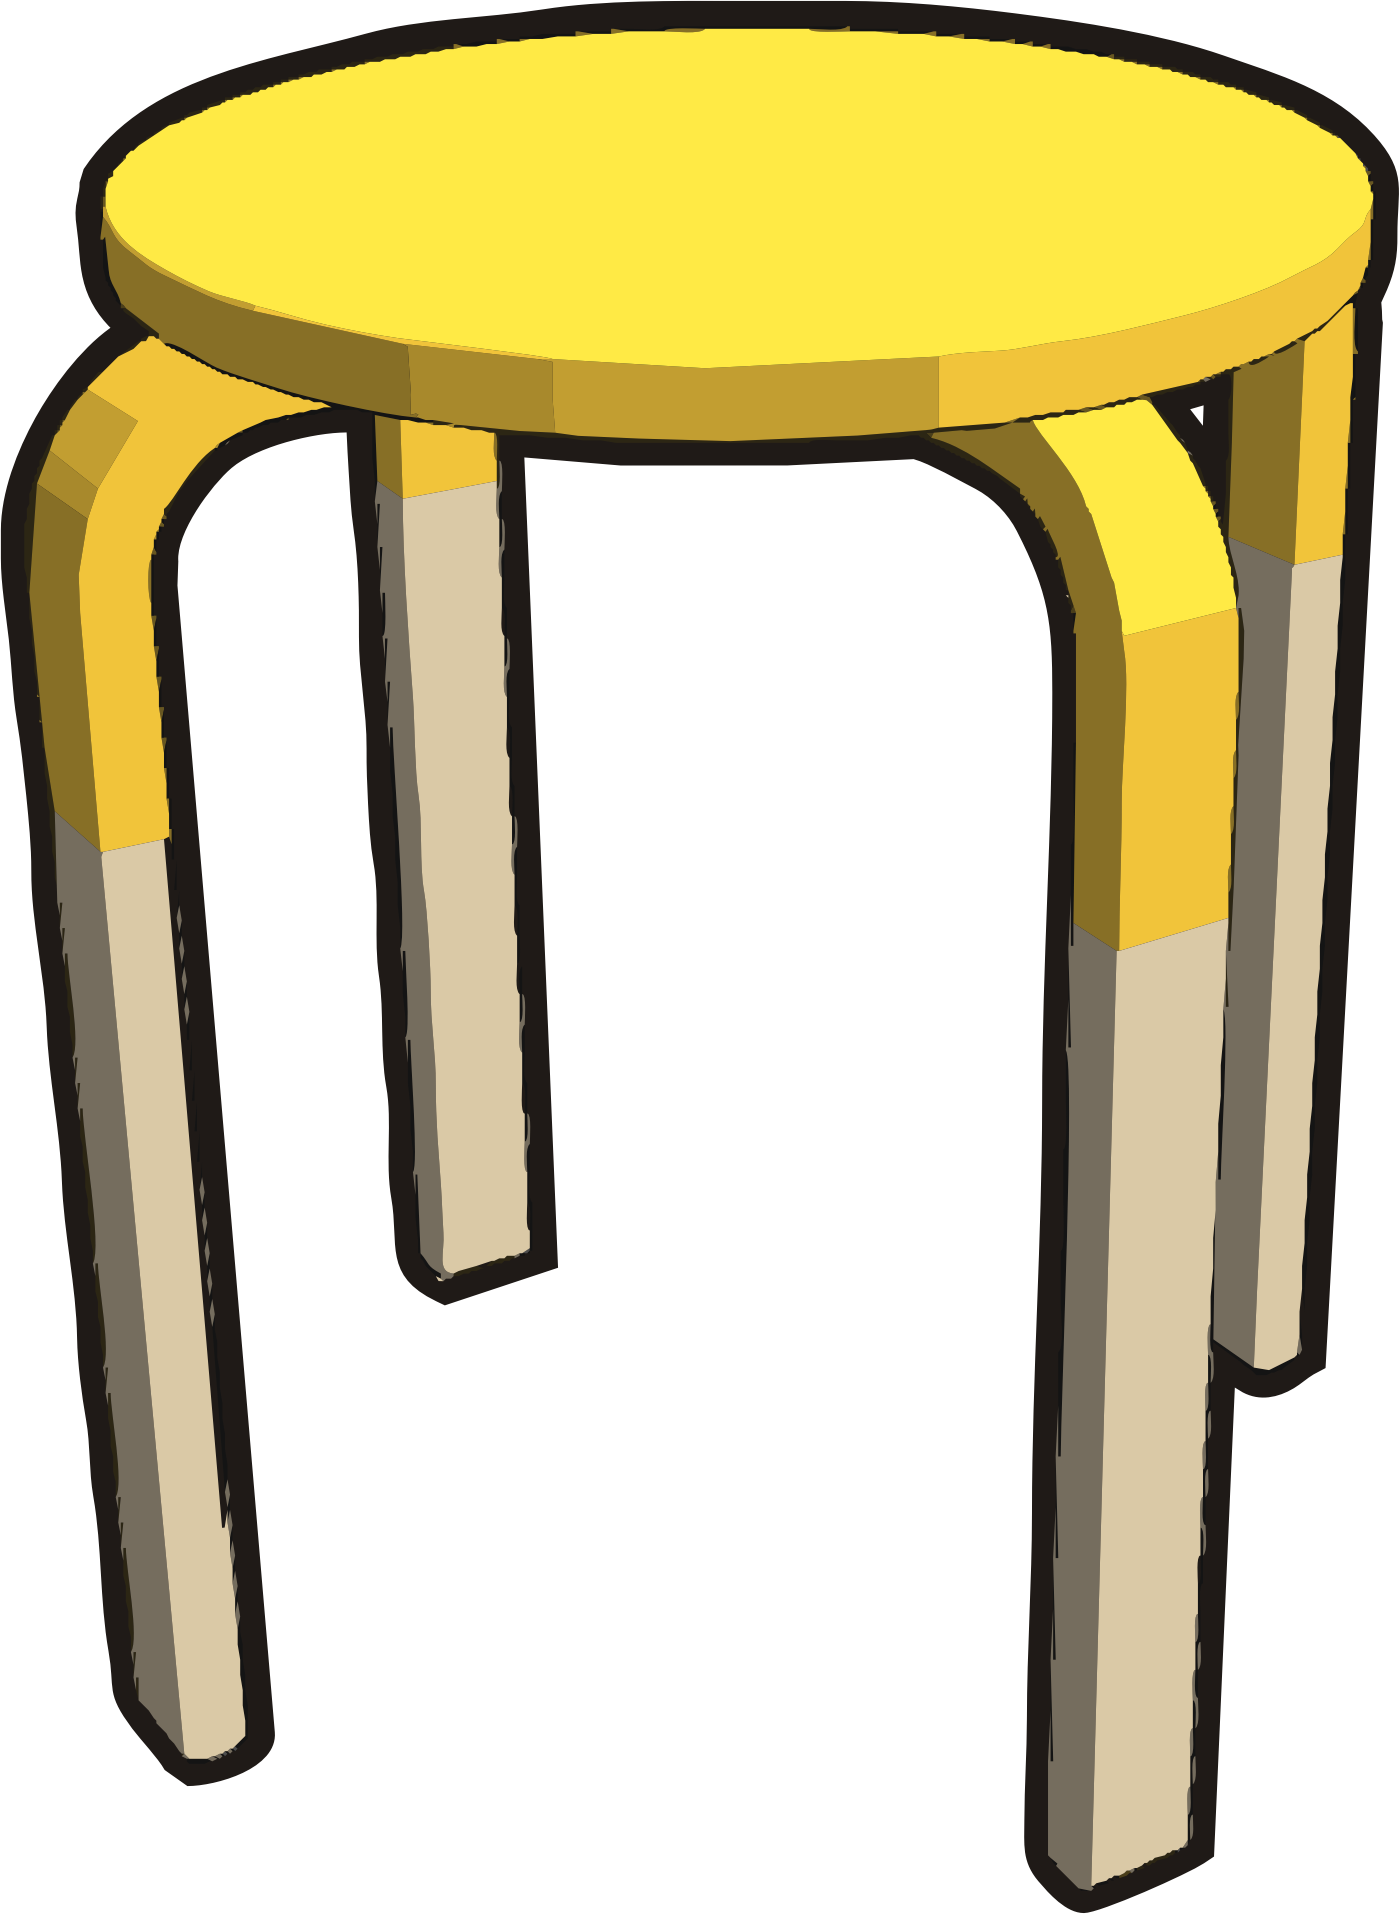 Ikea stuff - Frosta stool, half yellow by Vanja